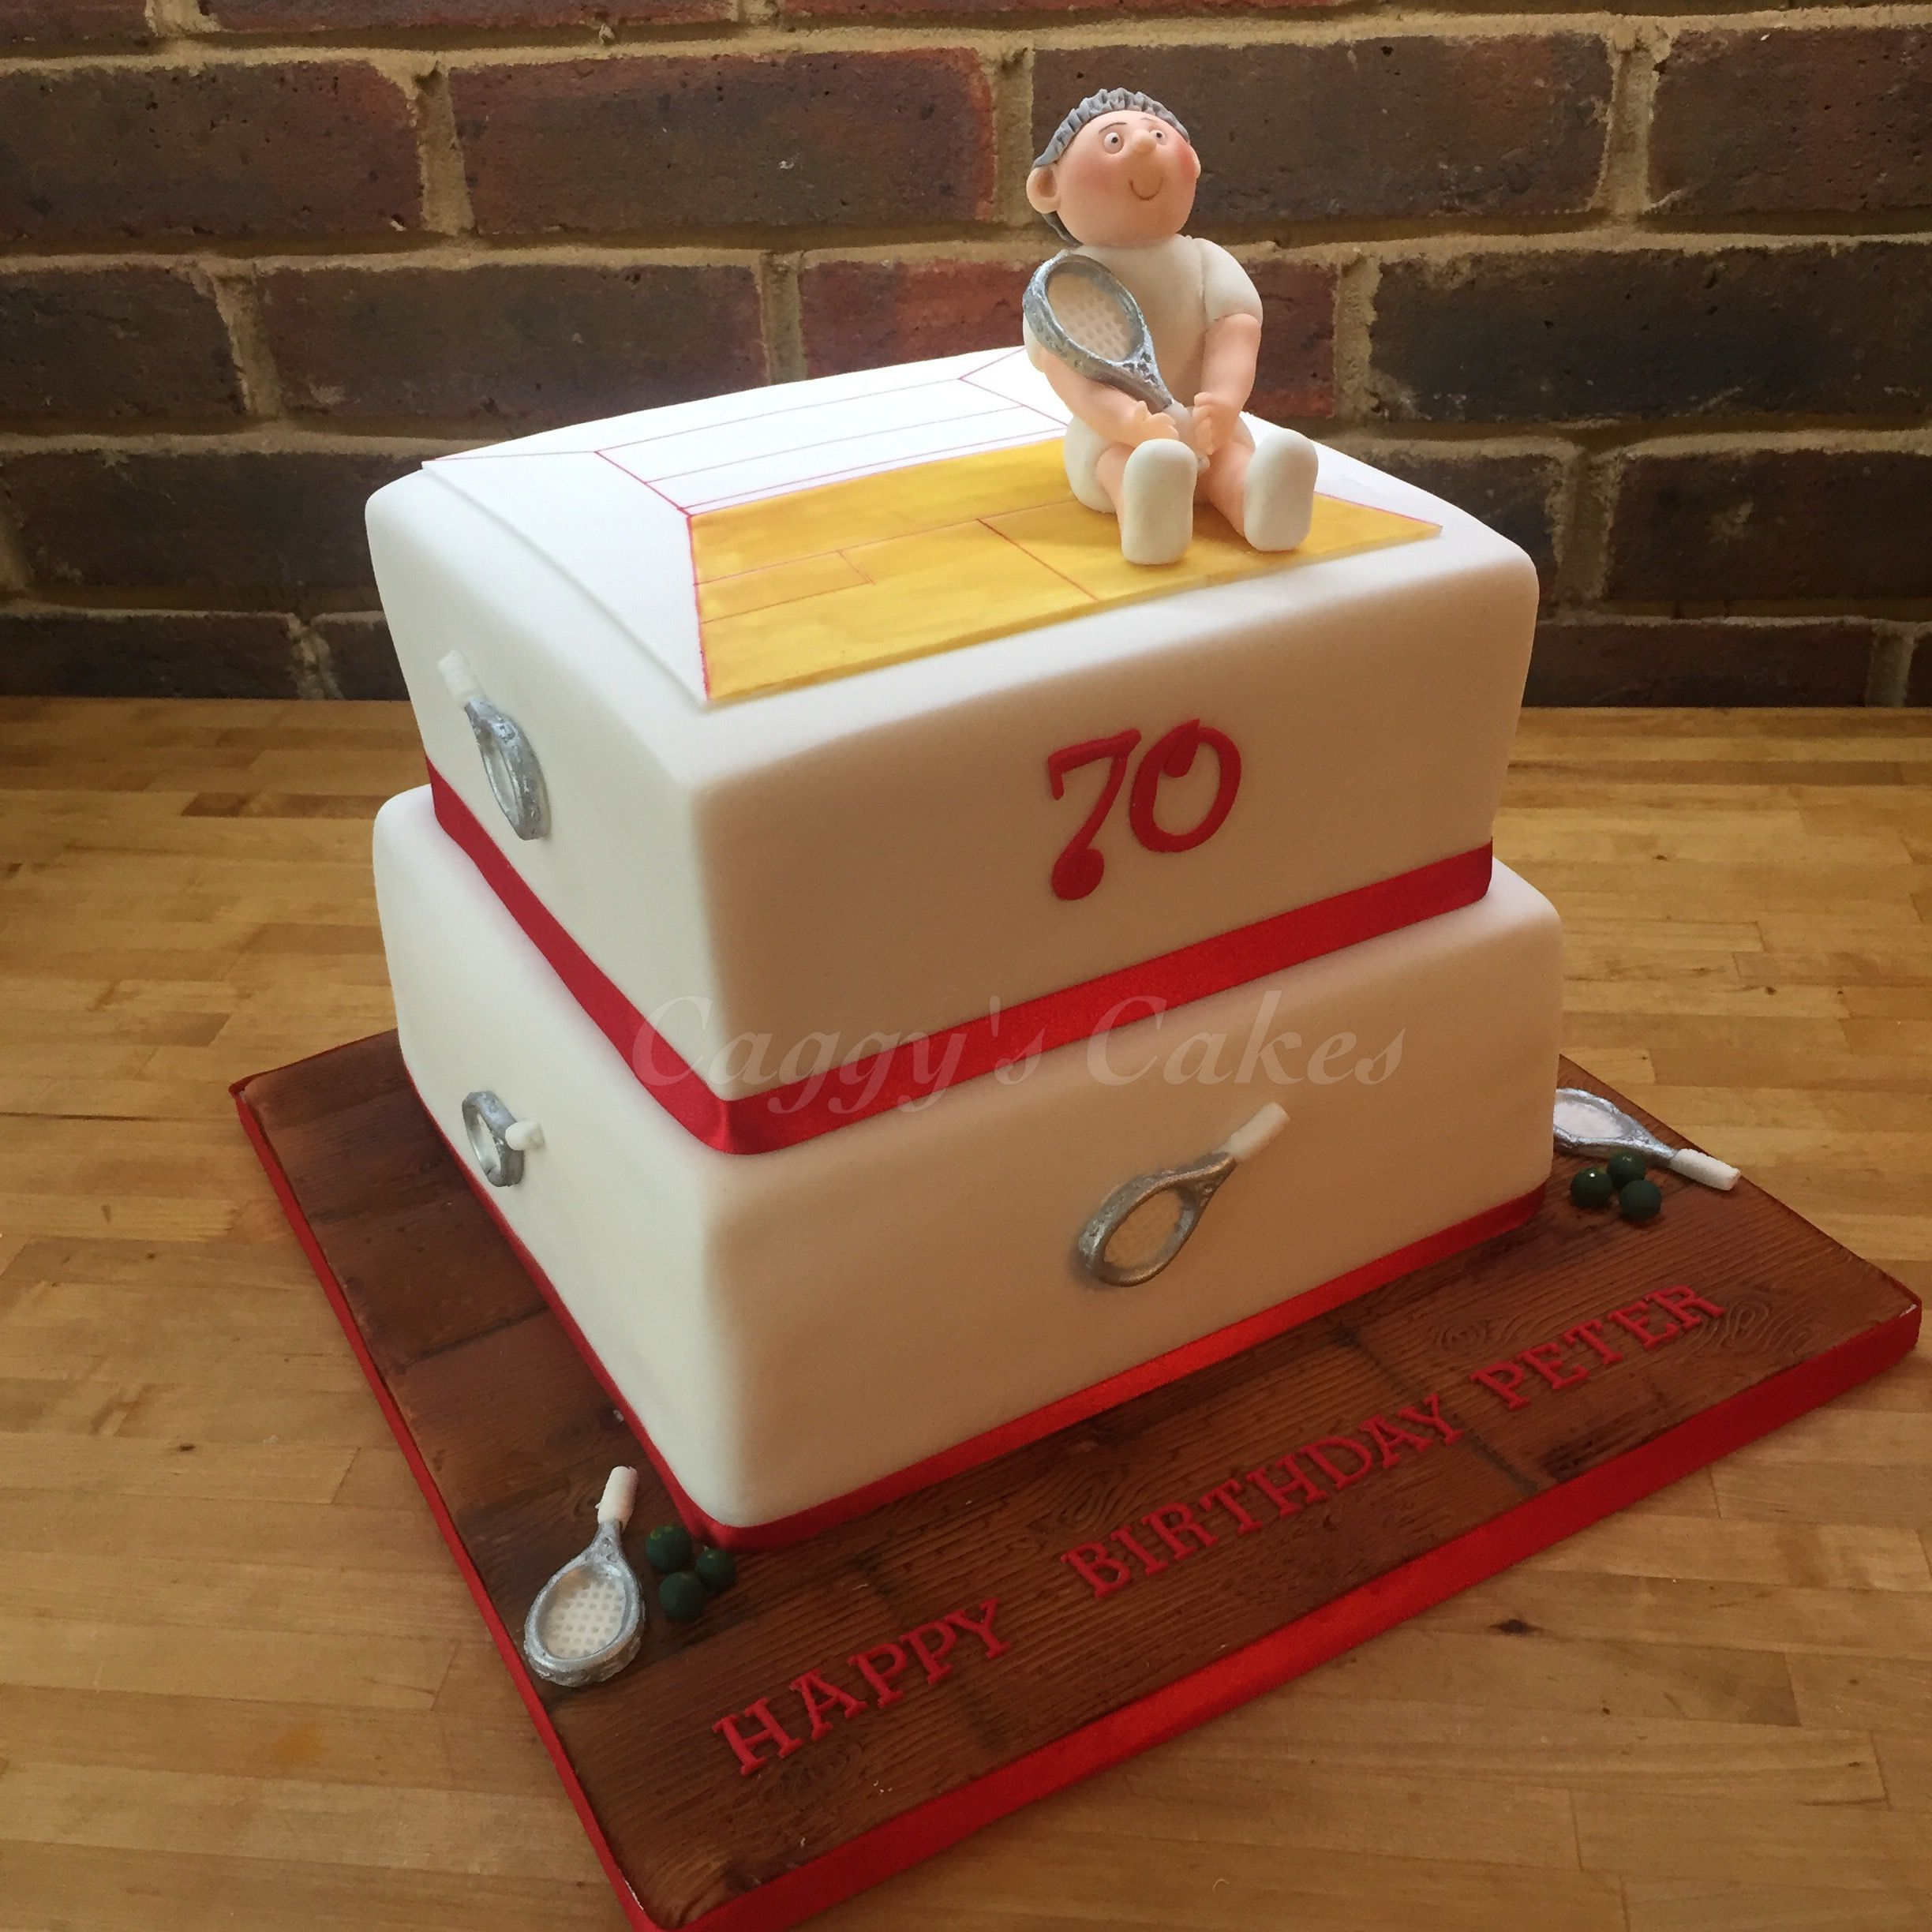 2 tier squash theme cake with squash court in 2D and model of the